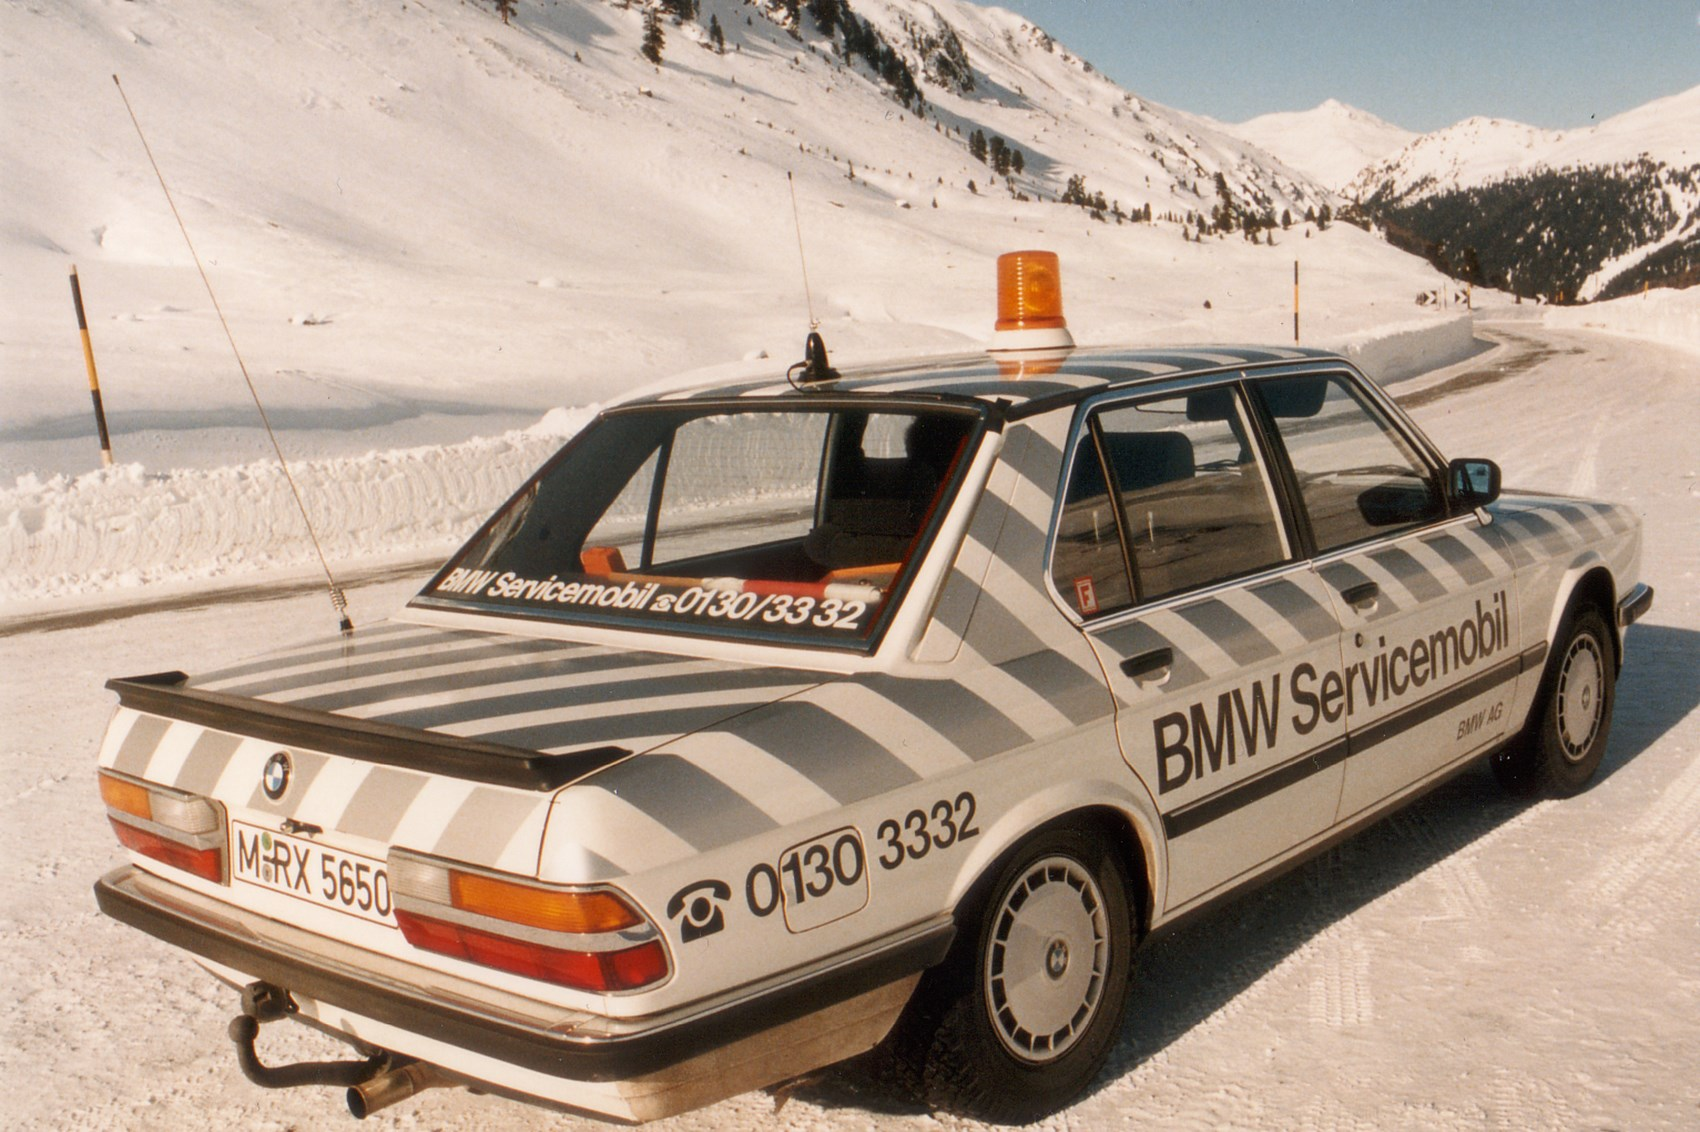 Gallery: 45 years of the BMW 5-series by CAR Magazine